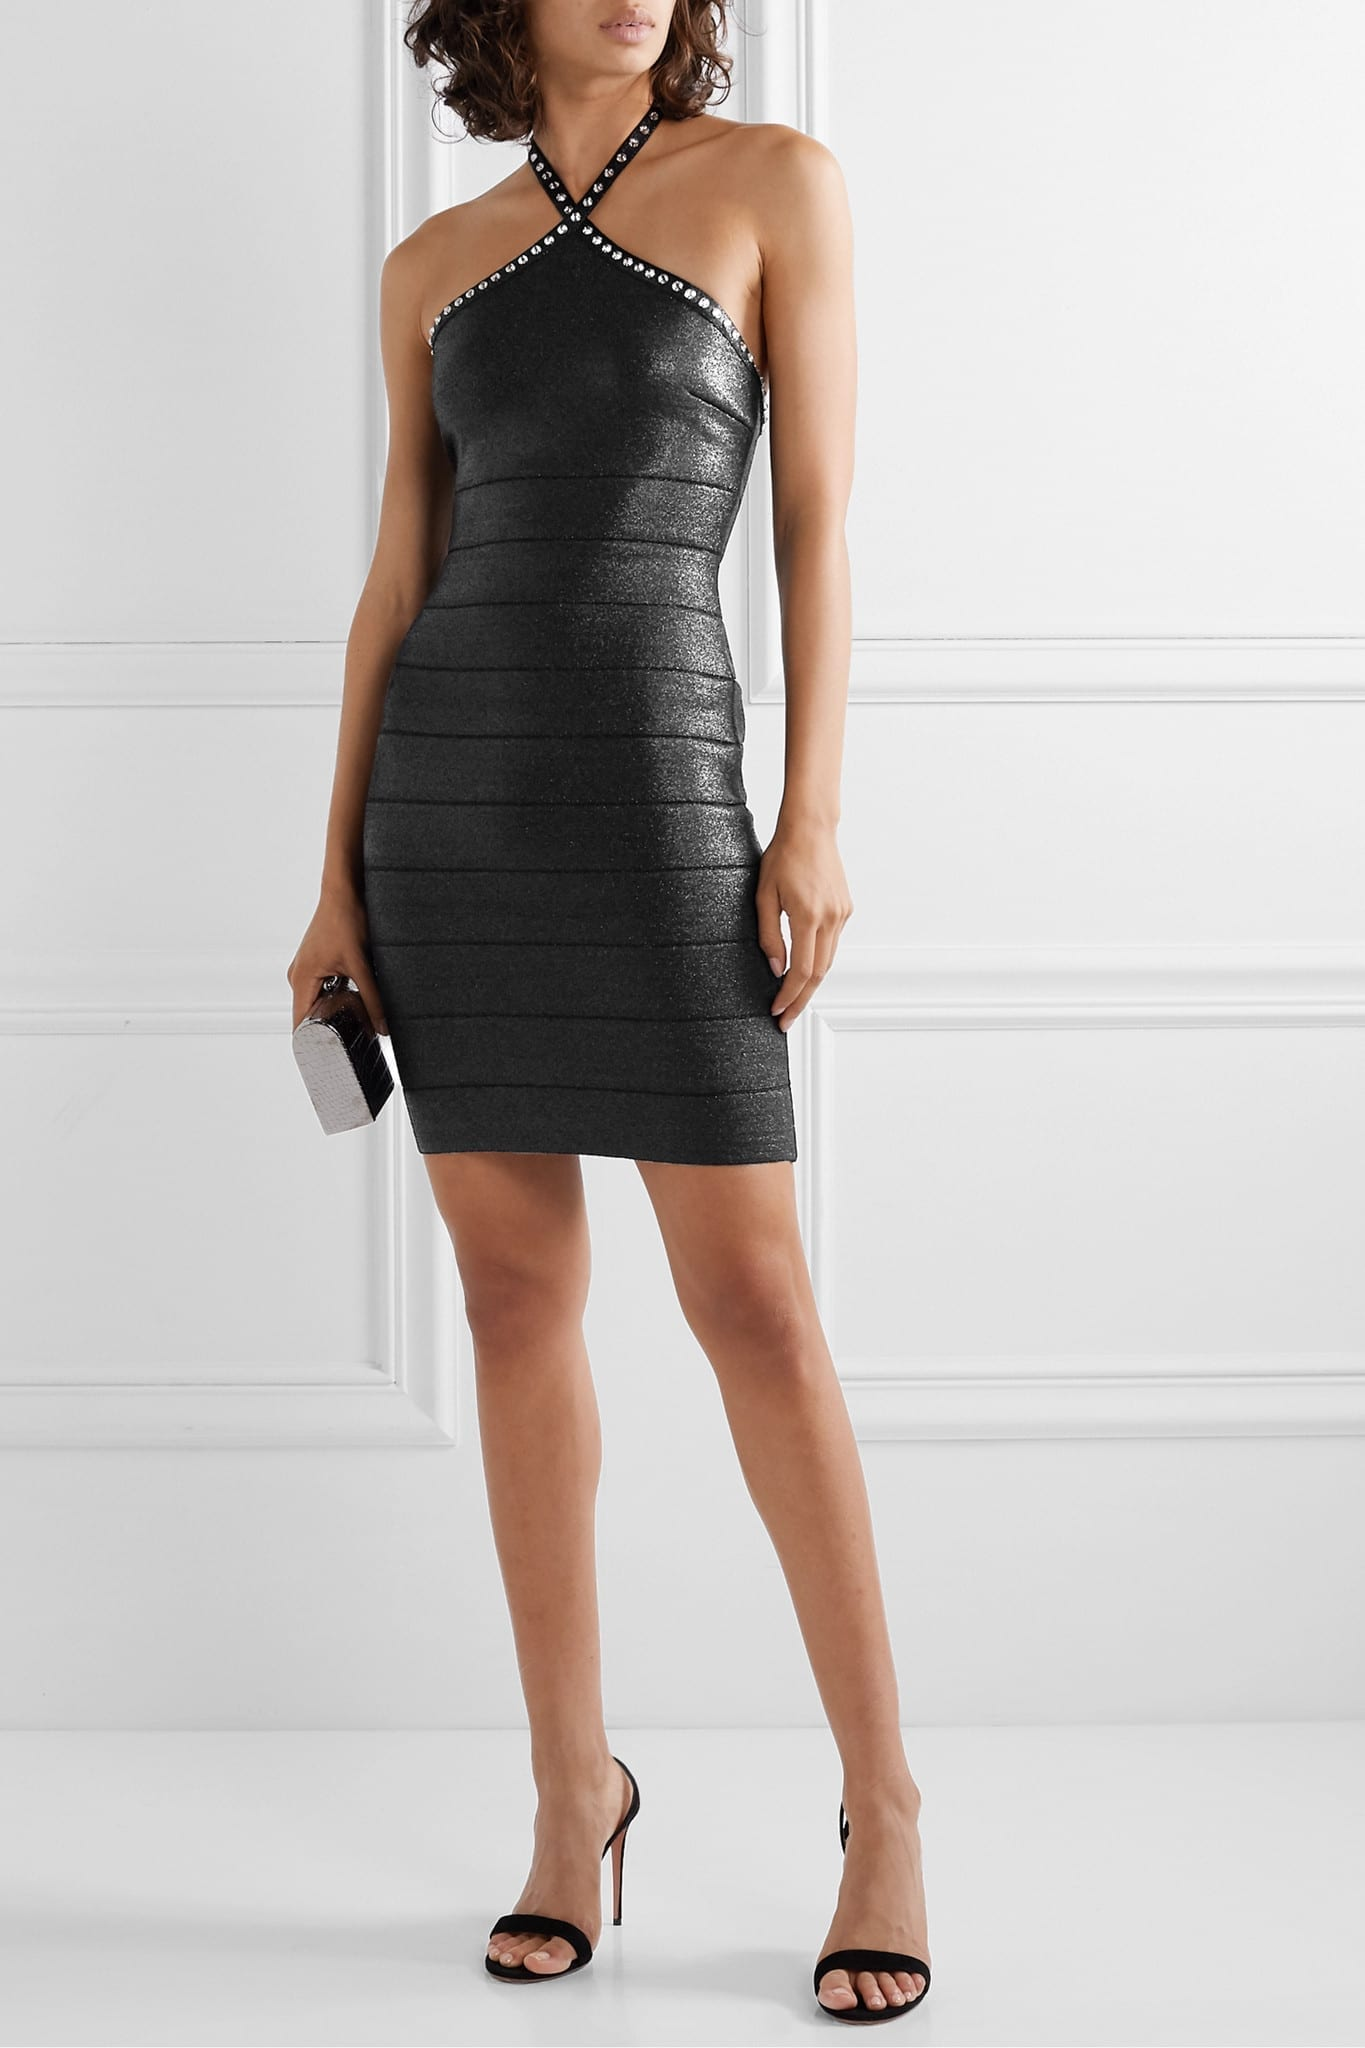 HERVÉ LÉGER Swarovski Crystal-embellished Metallic Bandage Halterneck Mini Dress